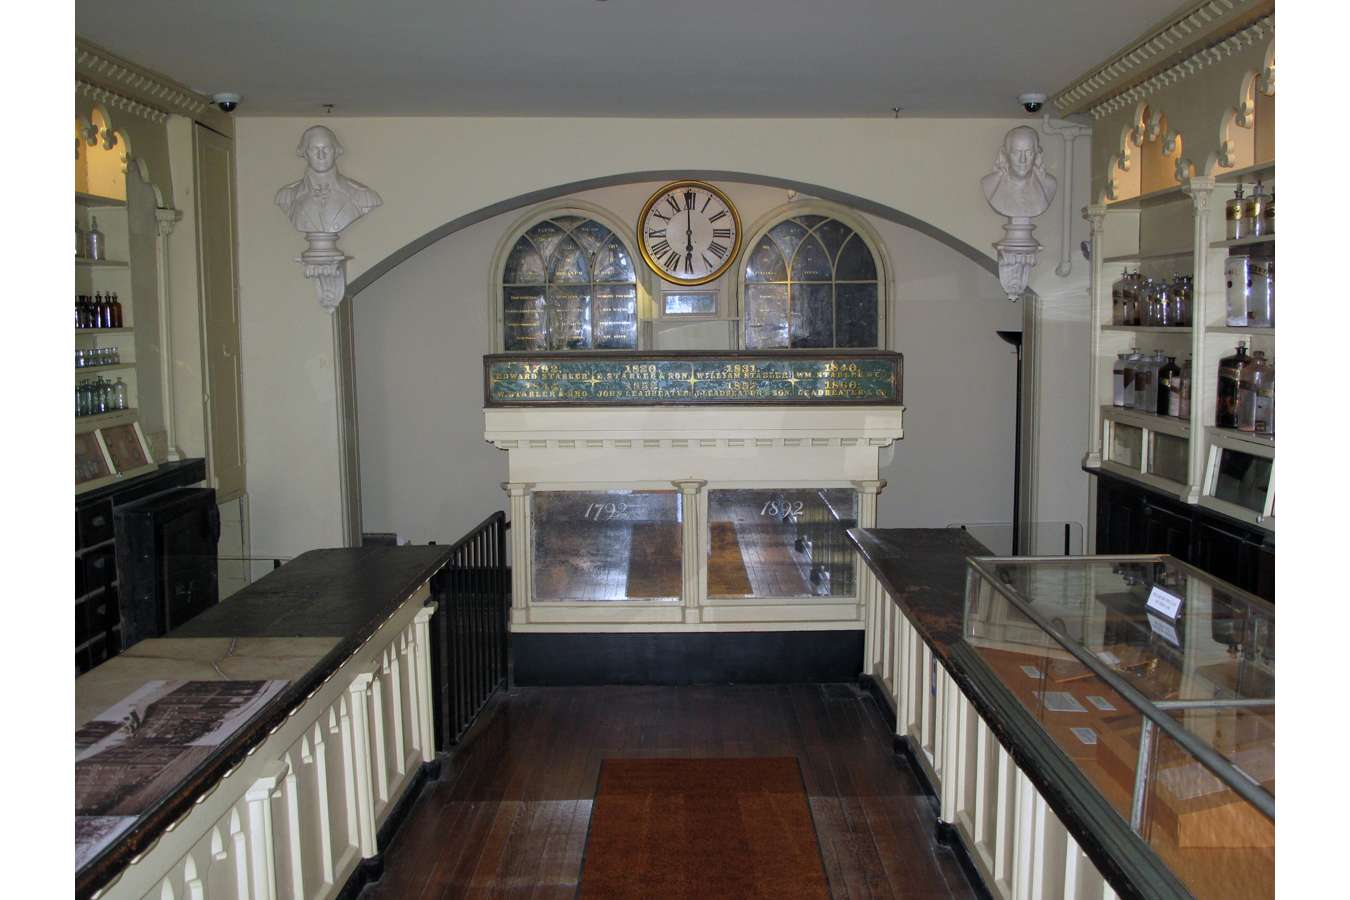 Apoth 7852 : Restored busts of George Washington and Ben Franklin and clock returned to arched wall